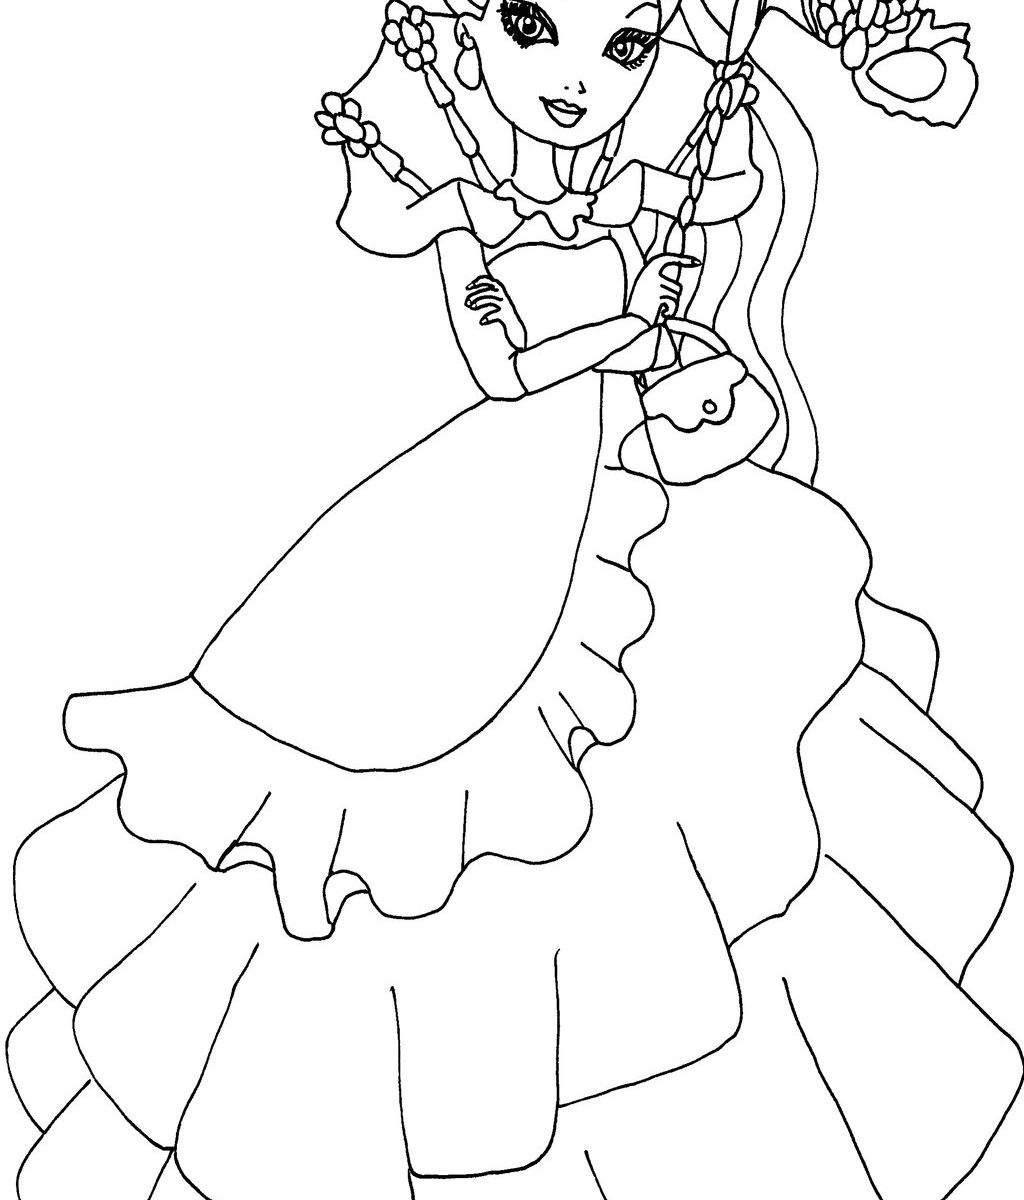 1024x1200 Ever After High Coloring Pages Breathtaking For Kids Way Too